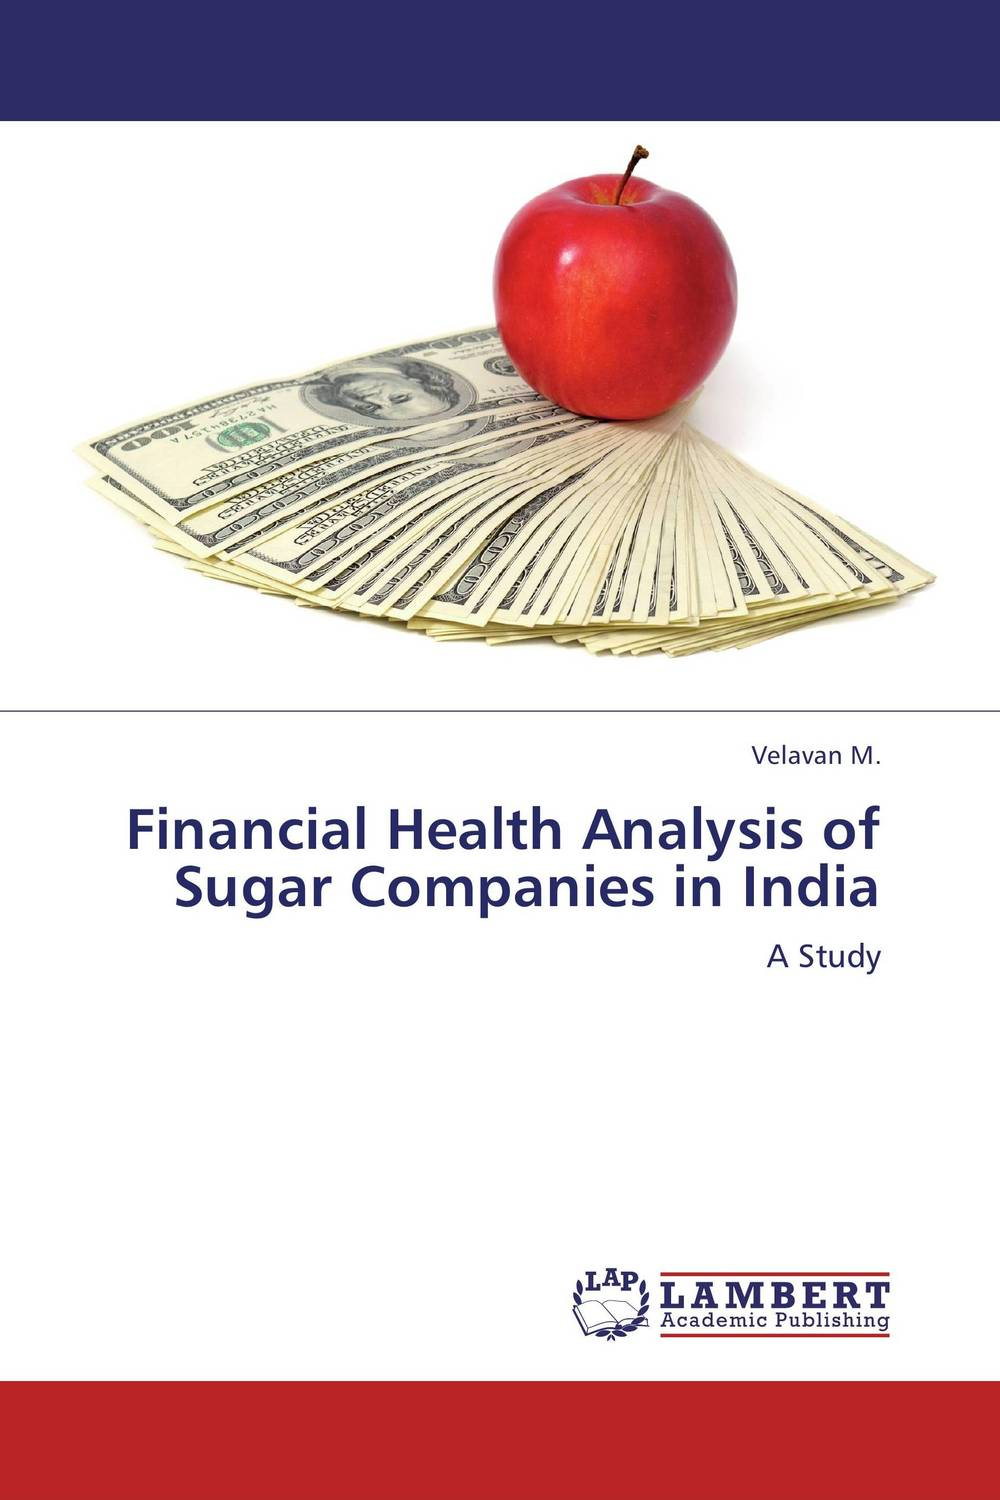 Financial Health Analysis of Sugar Companies in India prostate health devices is prostate removal prostatitis mainly for the prostate health and prostatitis health capsule